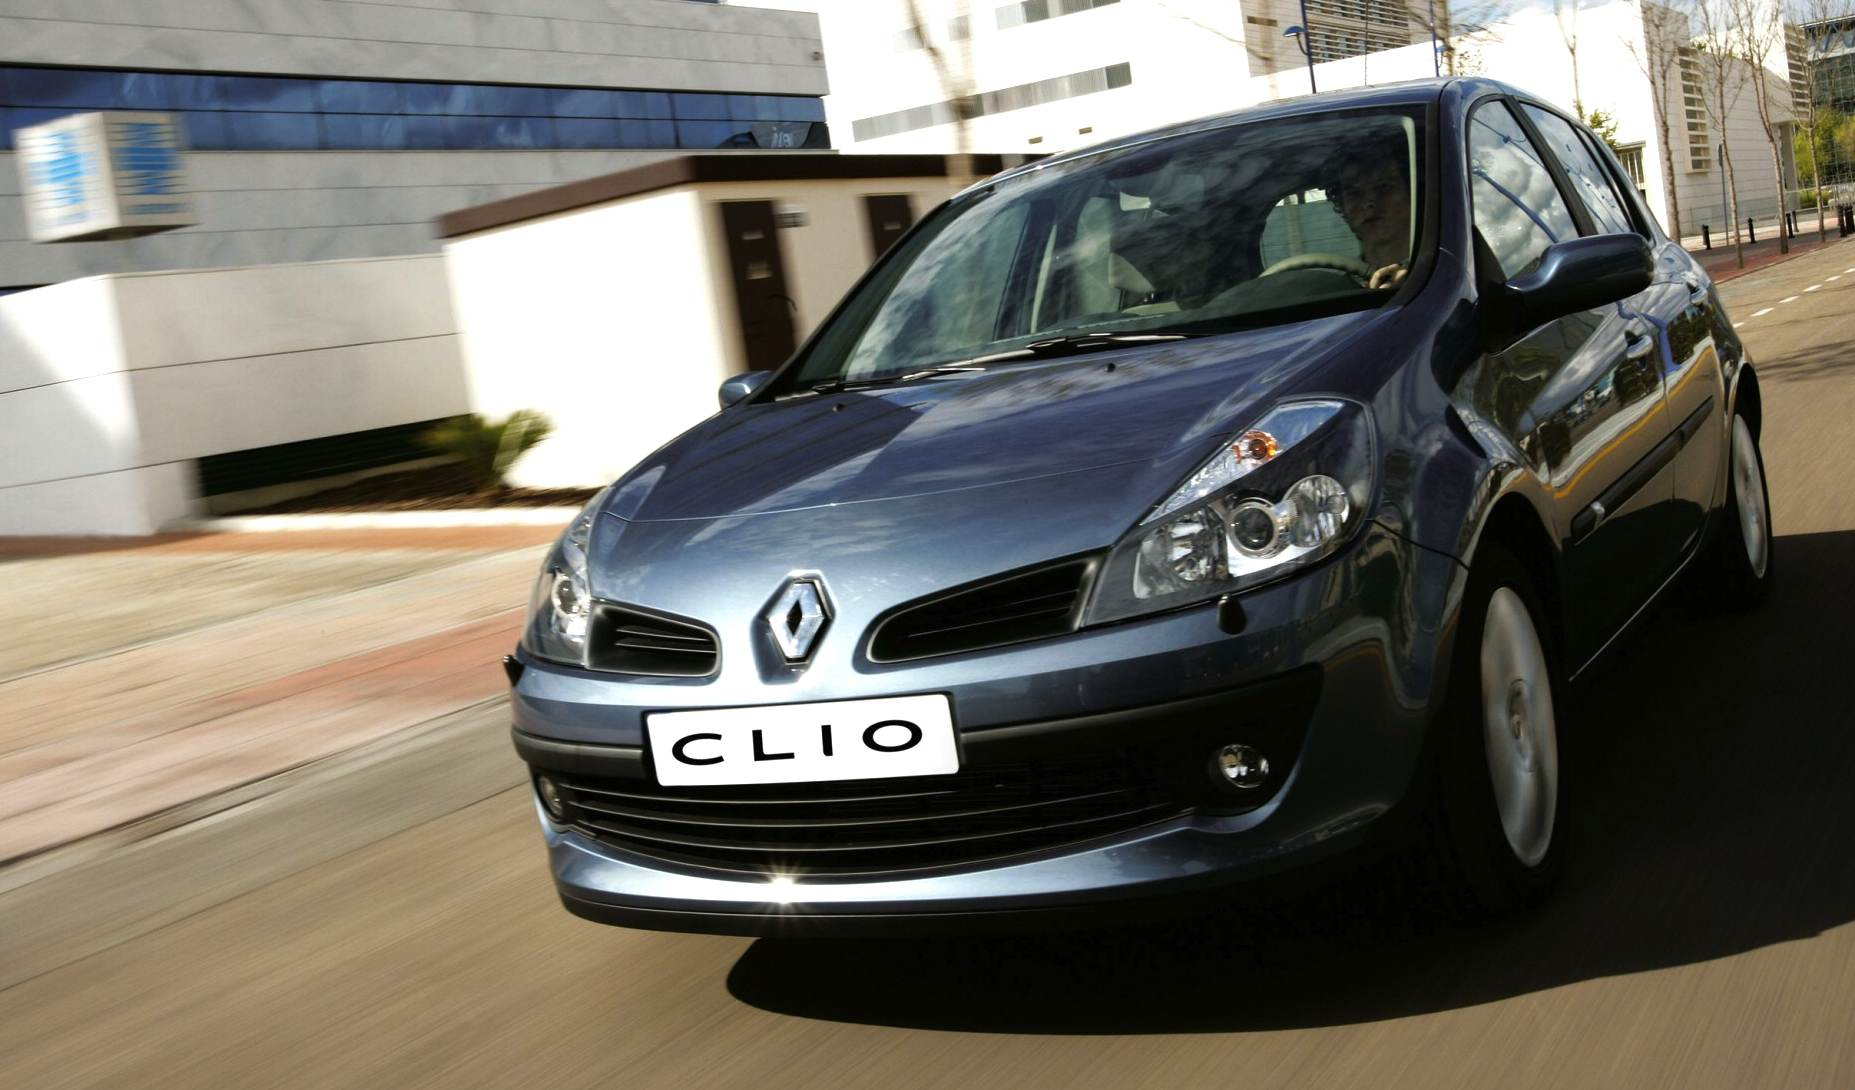 2006 renault clio iii pictures information and specs auto. Black Bedroom Furniture Sets. Home Design Ideas